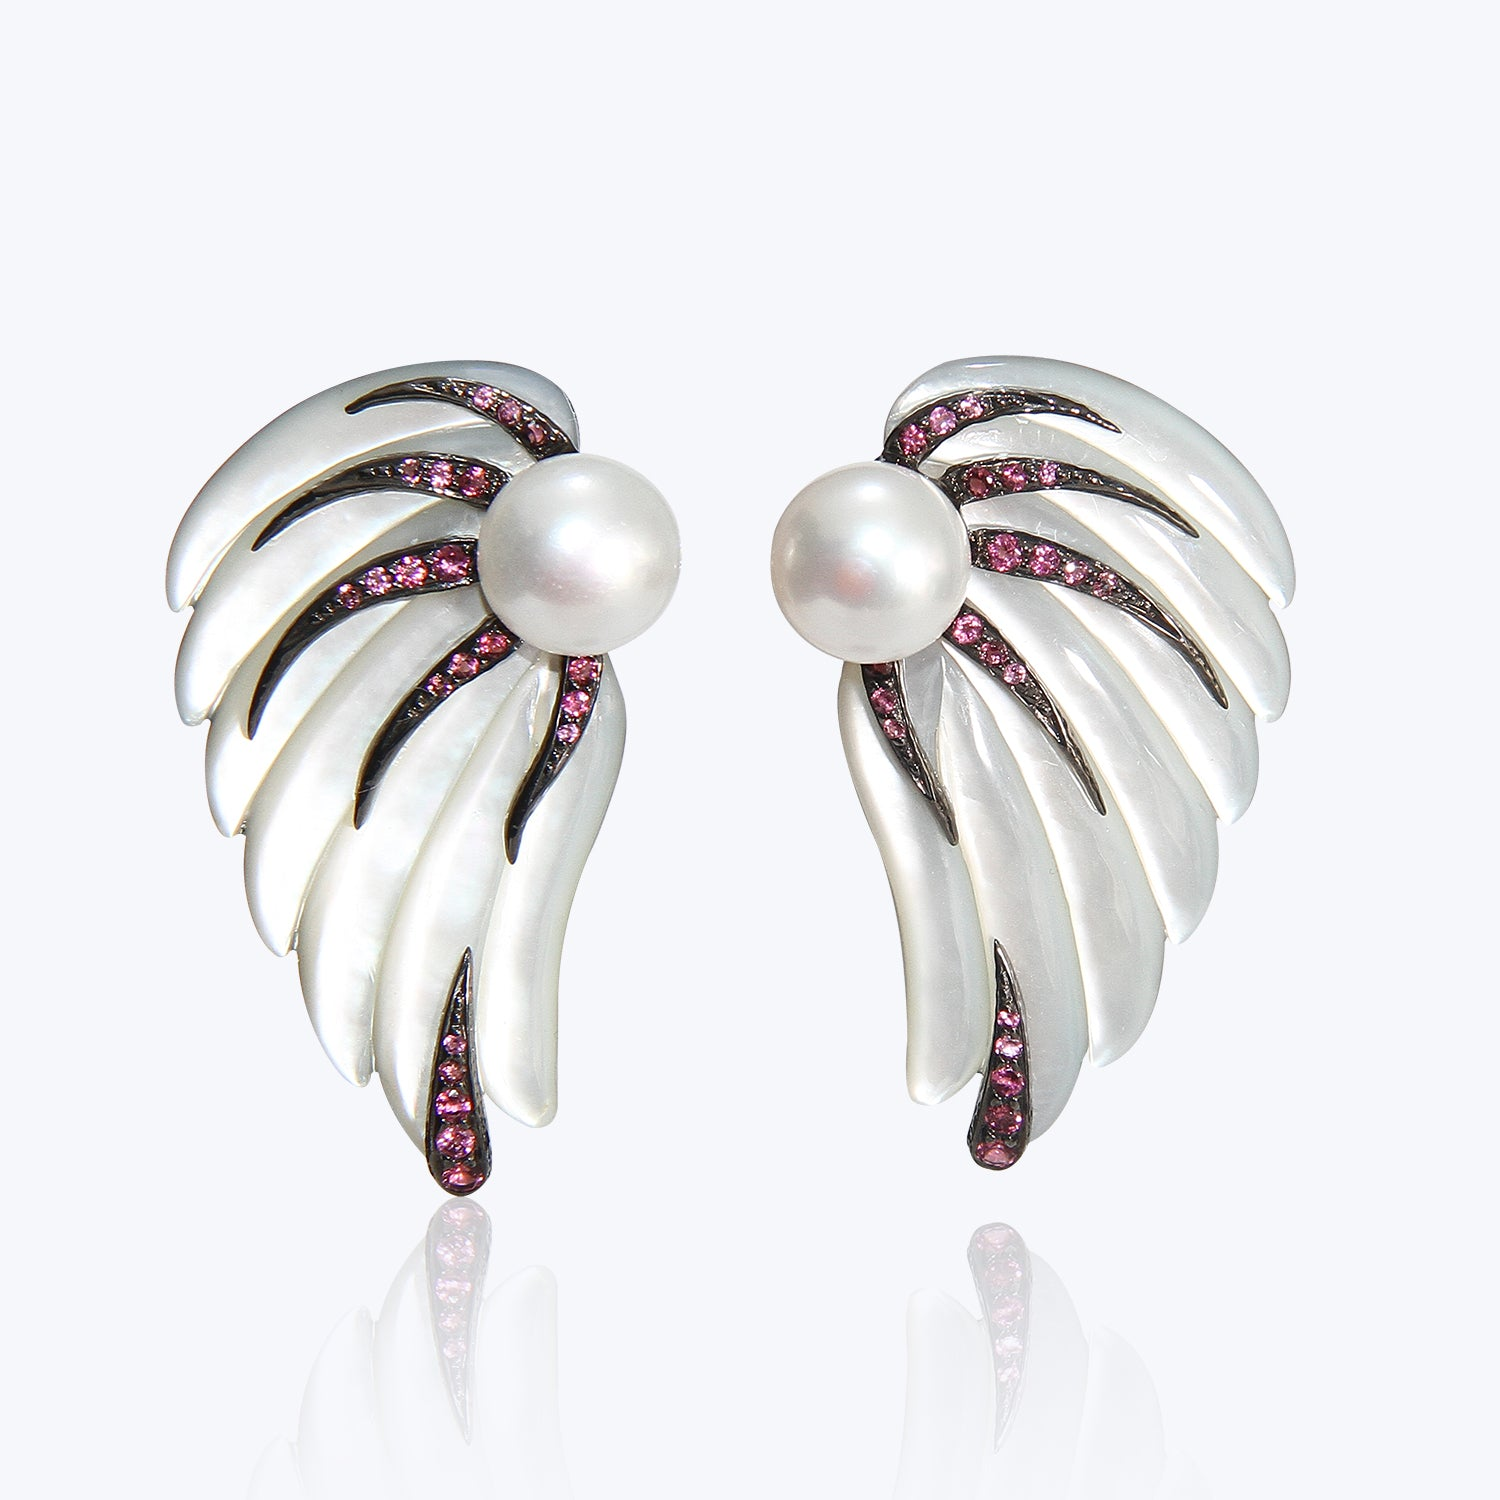 Carved Mother of Pearl Earrings with Pink Tourmaline and Pearl wt. 39.22 g.